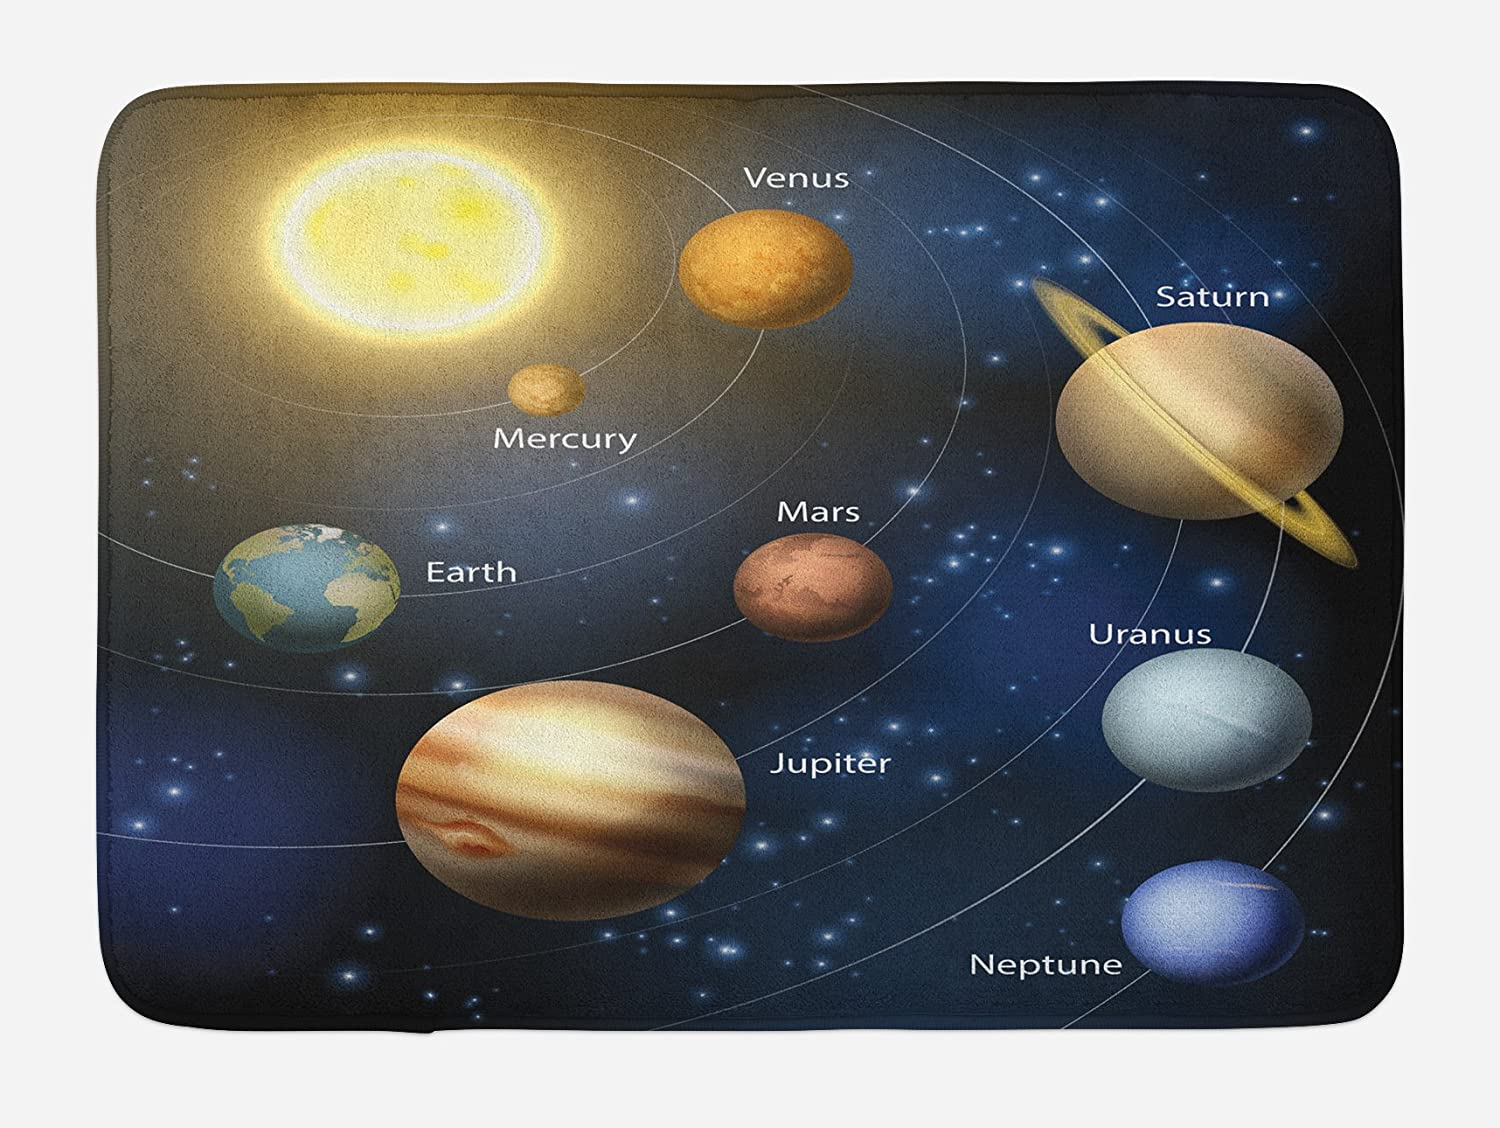 Ambesonne Science Bath Mat, Realistic Illustration of Solar System Sun Planets Orbit Astronomy Outer Space, Plush Bathroom Decor Mat with Non Slip Backing, 29.5